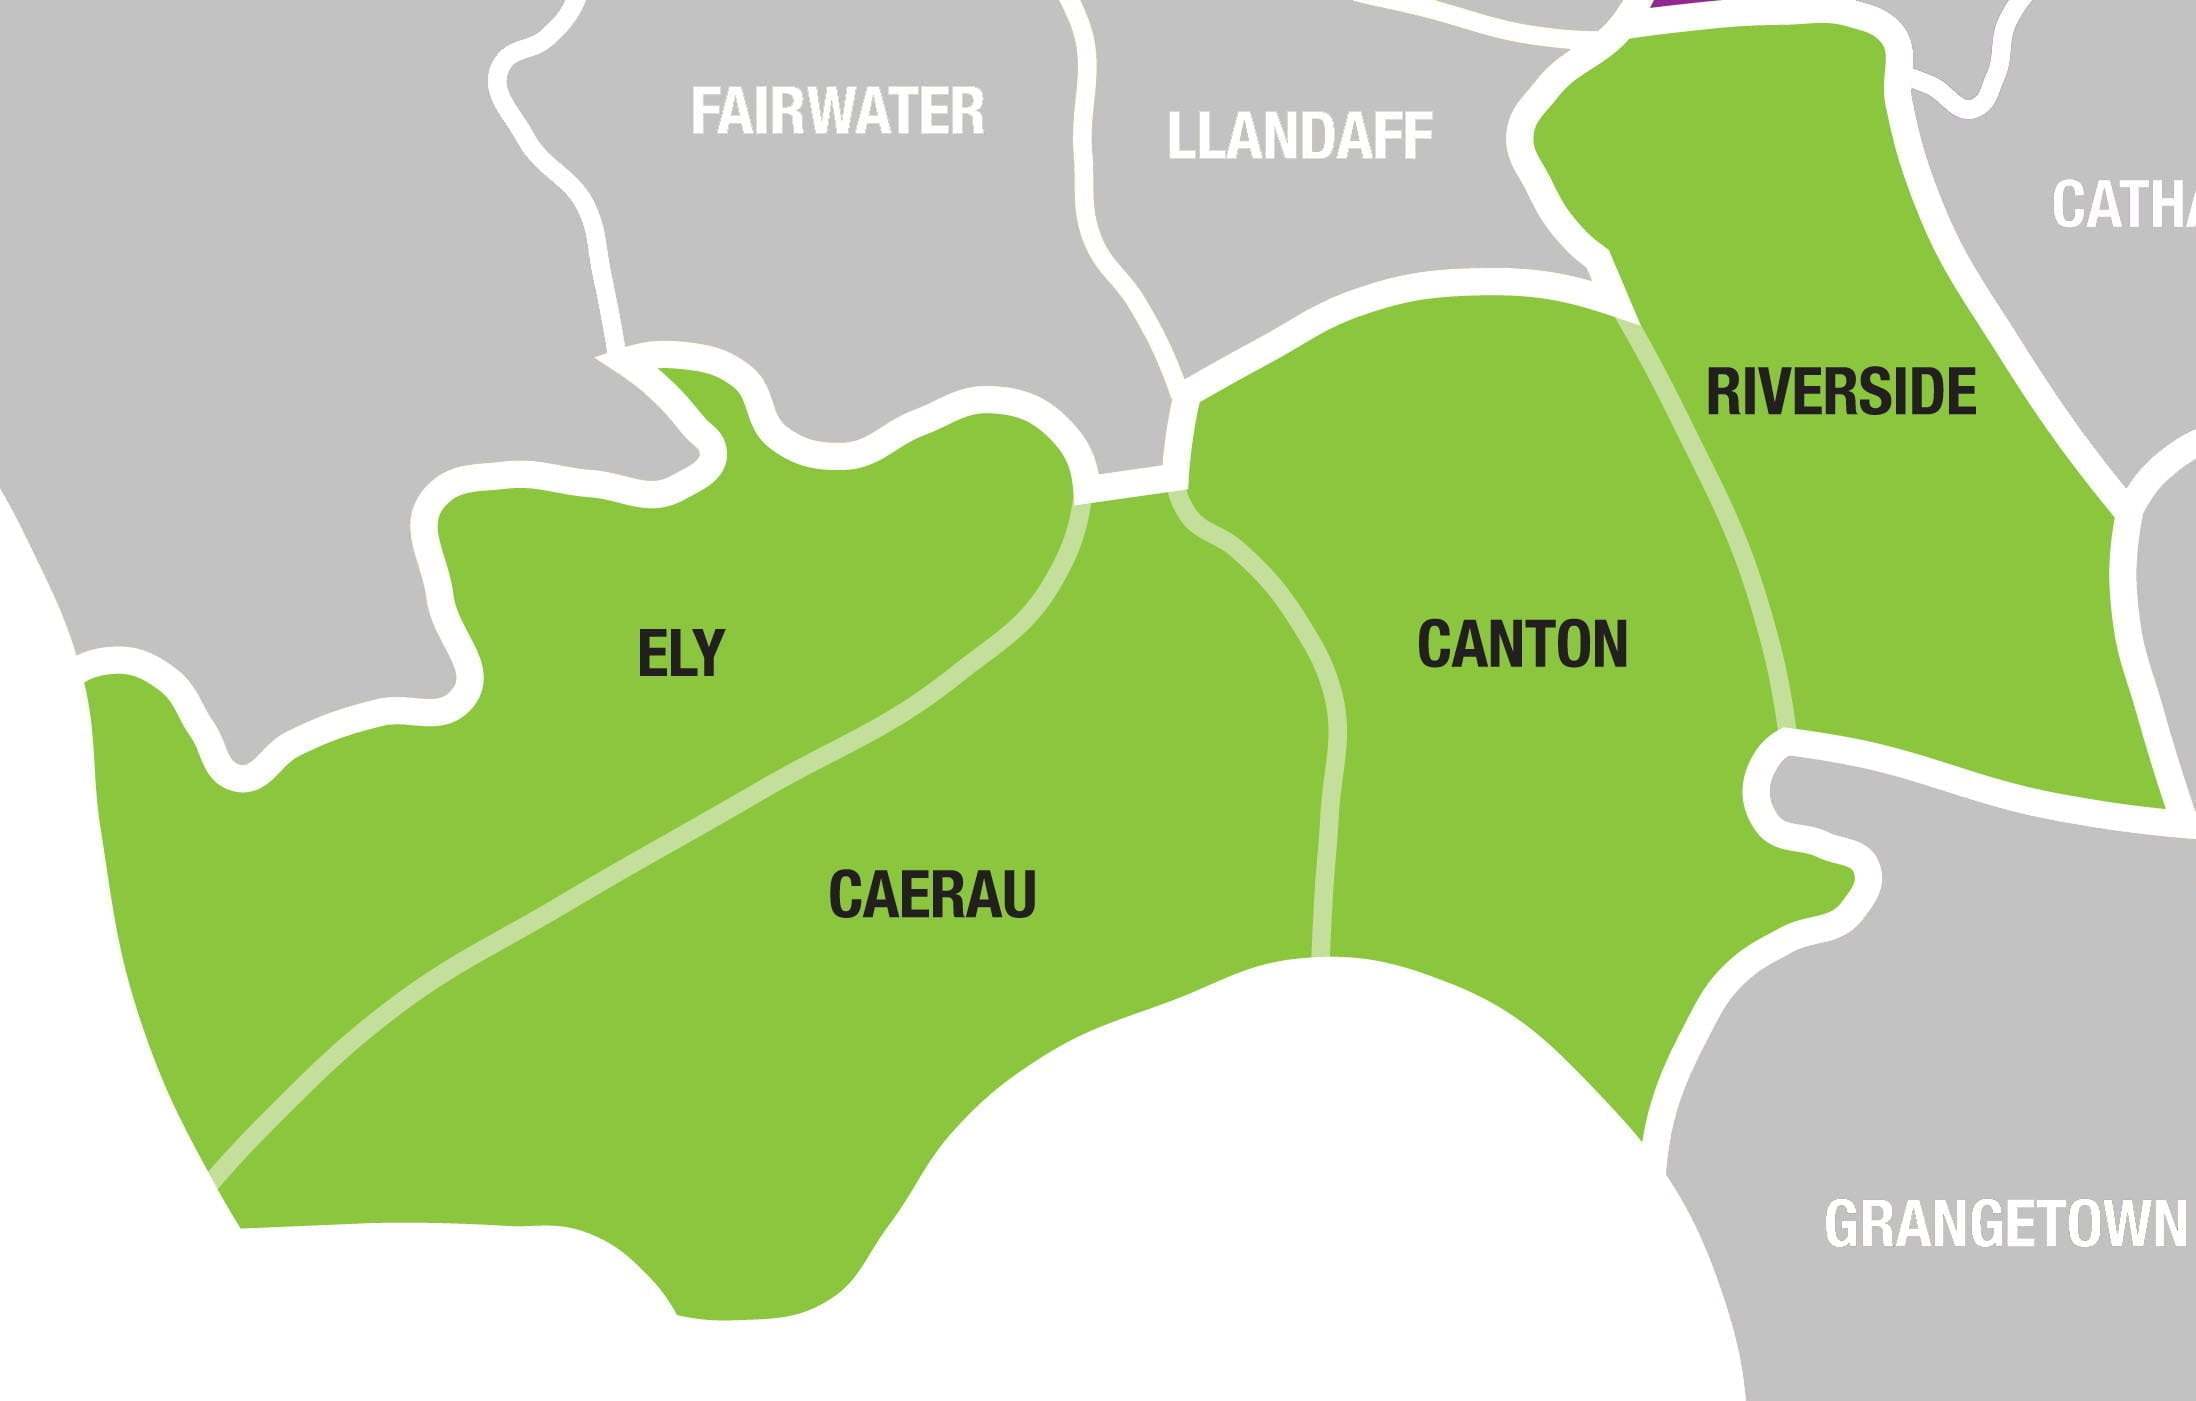 Map of Cardiff South West